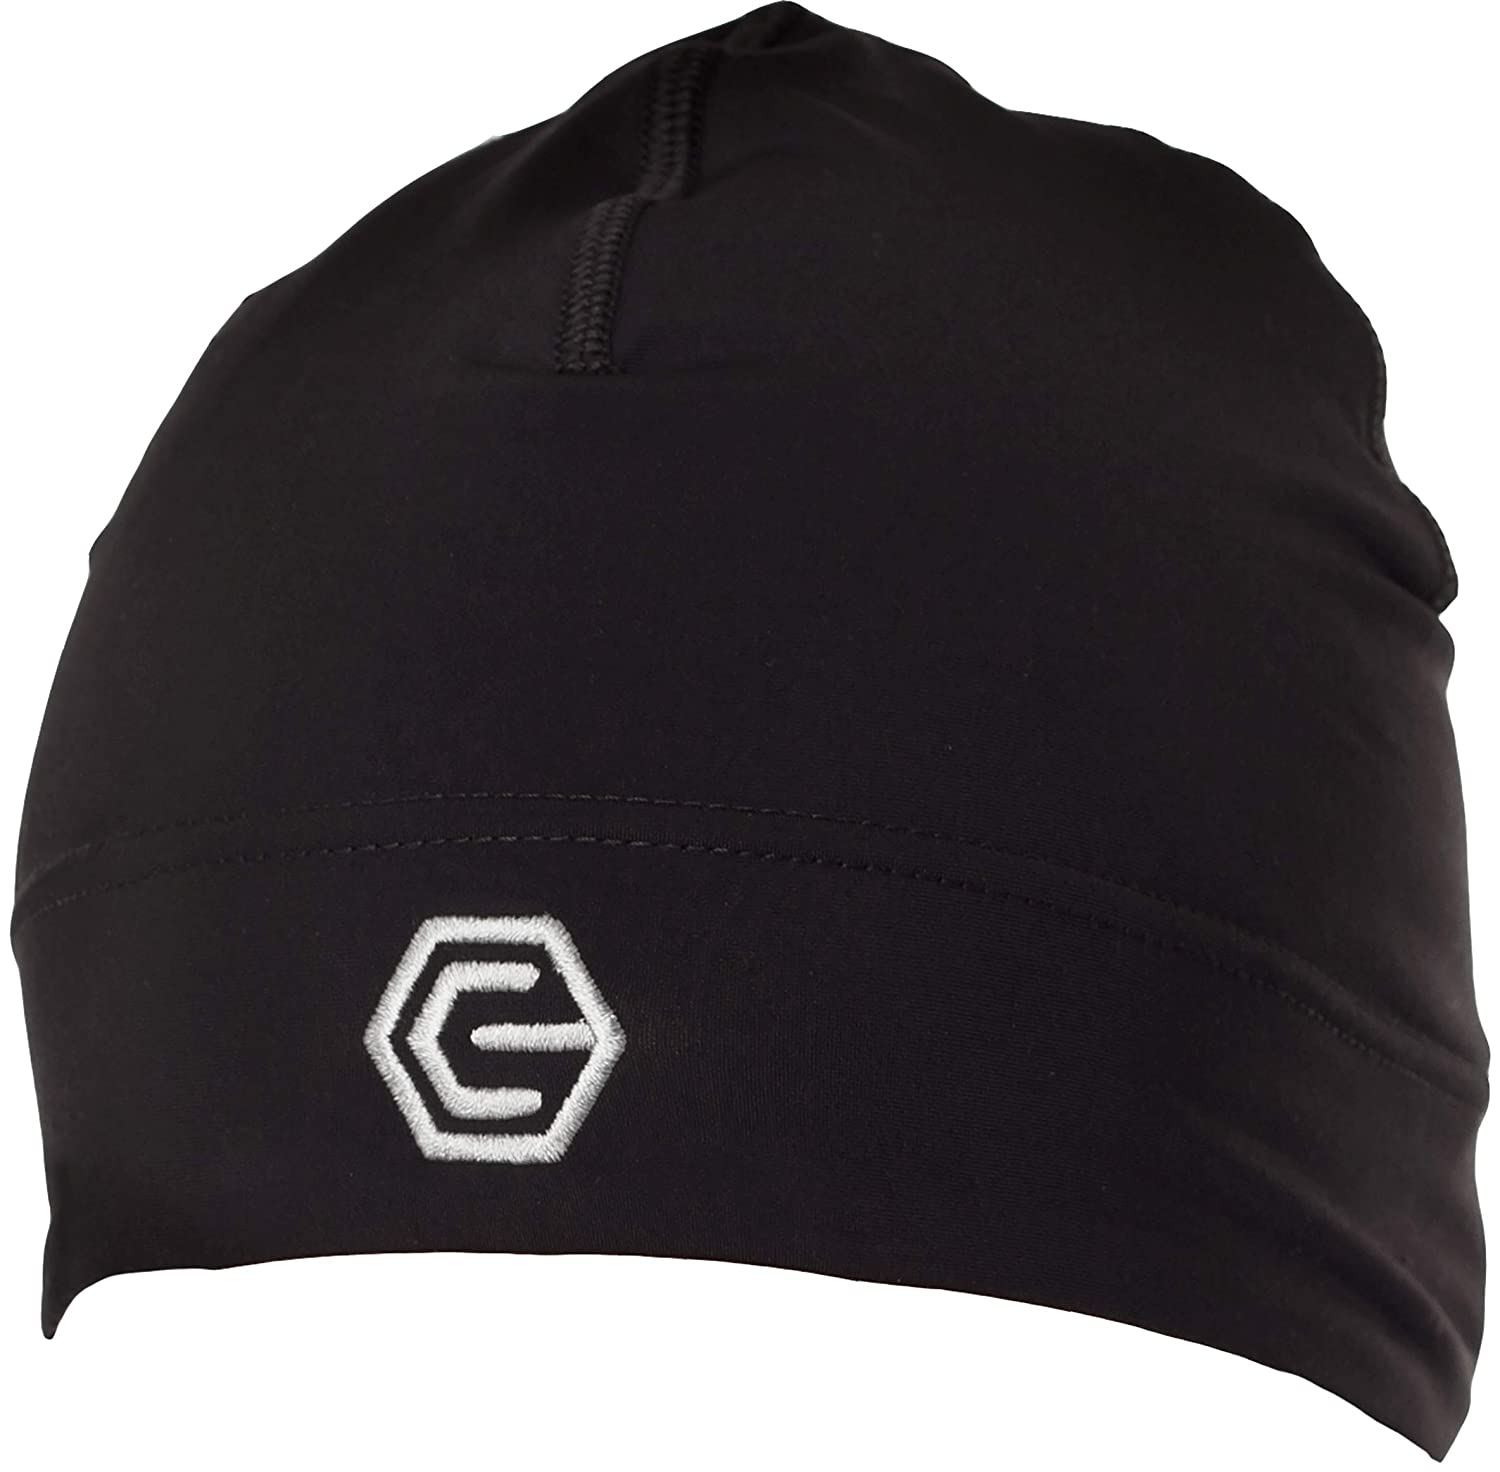 09b6317c950 geco Sportswear Training Beanie Hat  Amazon.co.uk  Sports   Outdoors